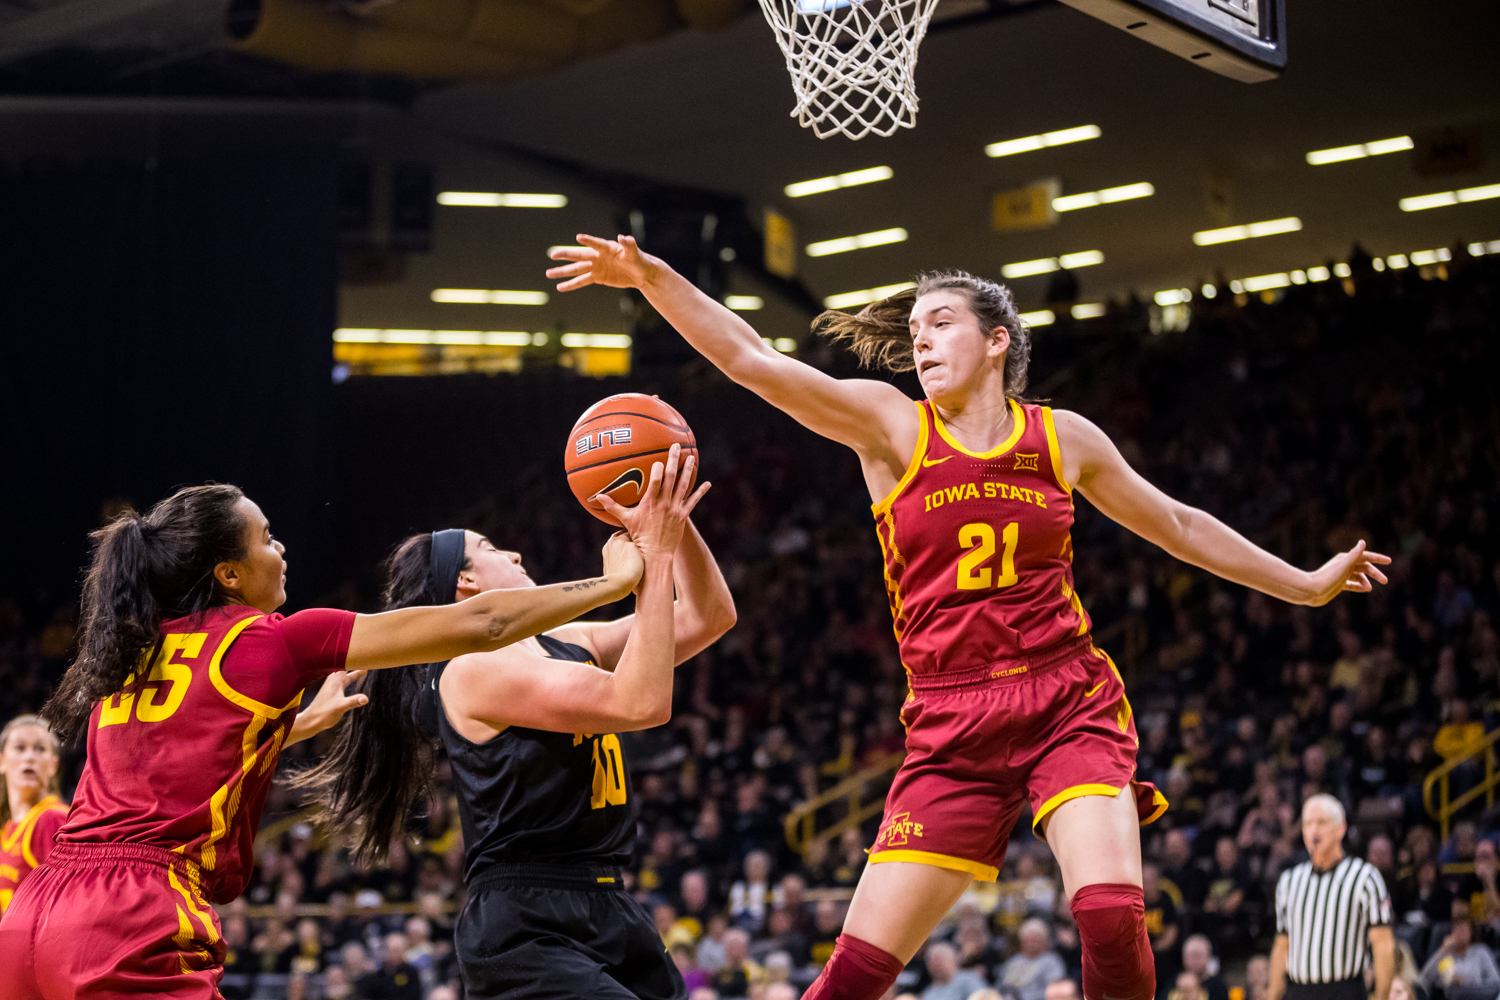 Iowa State guard Bridget Carleton #21 tries to block the shot of Iowa forward Megan Gustafson #10 during a women's basketball game against The University of Iowa at Carver-Hawkeye Arena on Wednesday, Dec. 5, 2018. The Hawkeyes defeated the Cyclones 73-70.